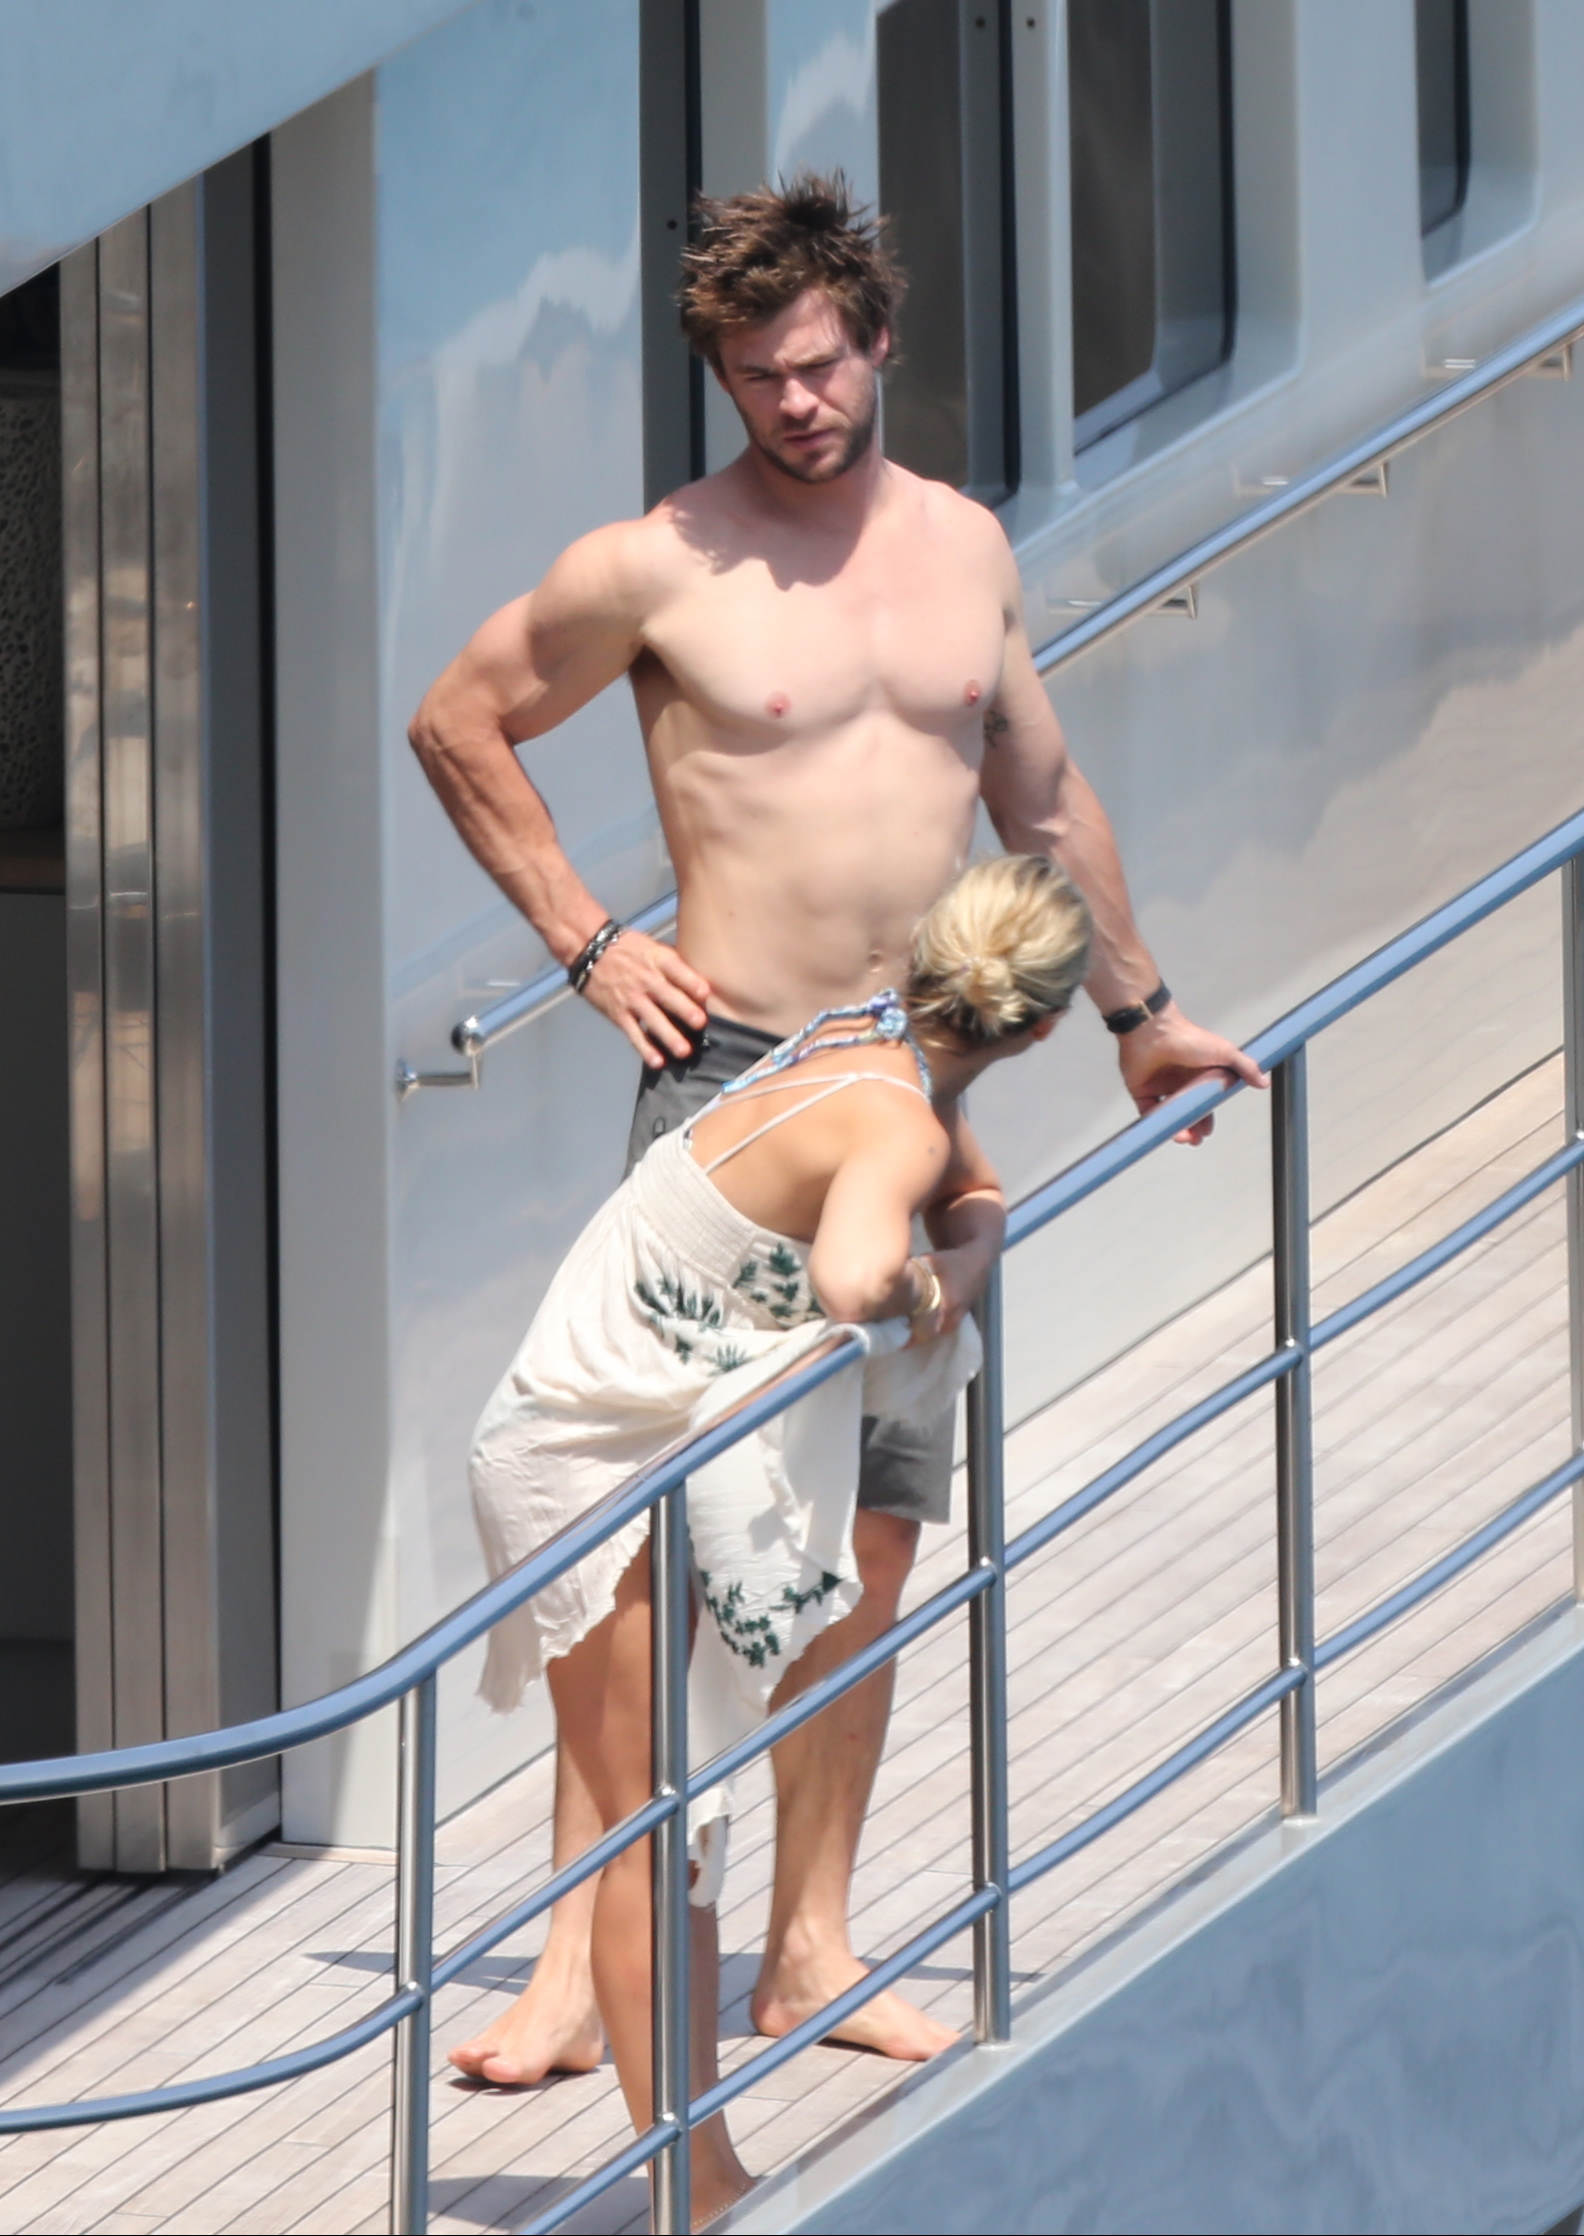 Fotos de chris hemsworth desnudo